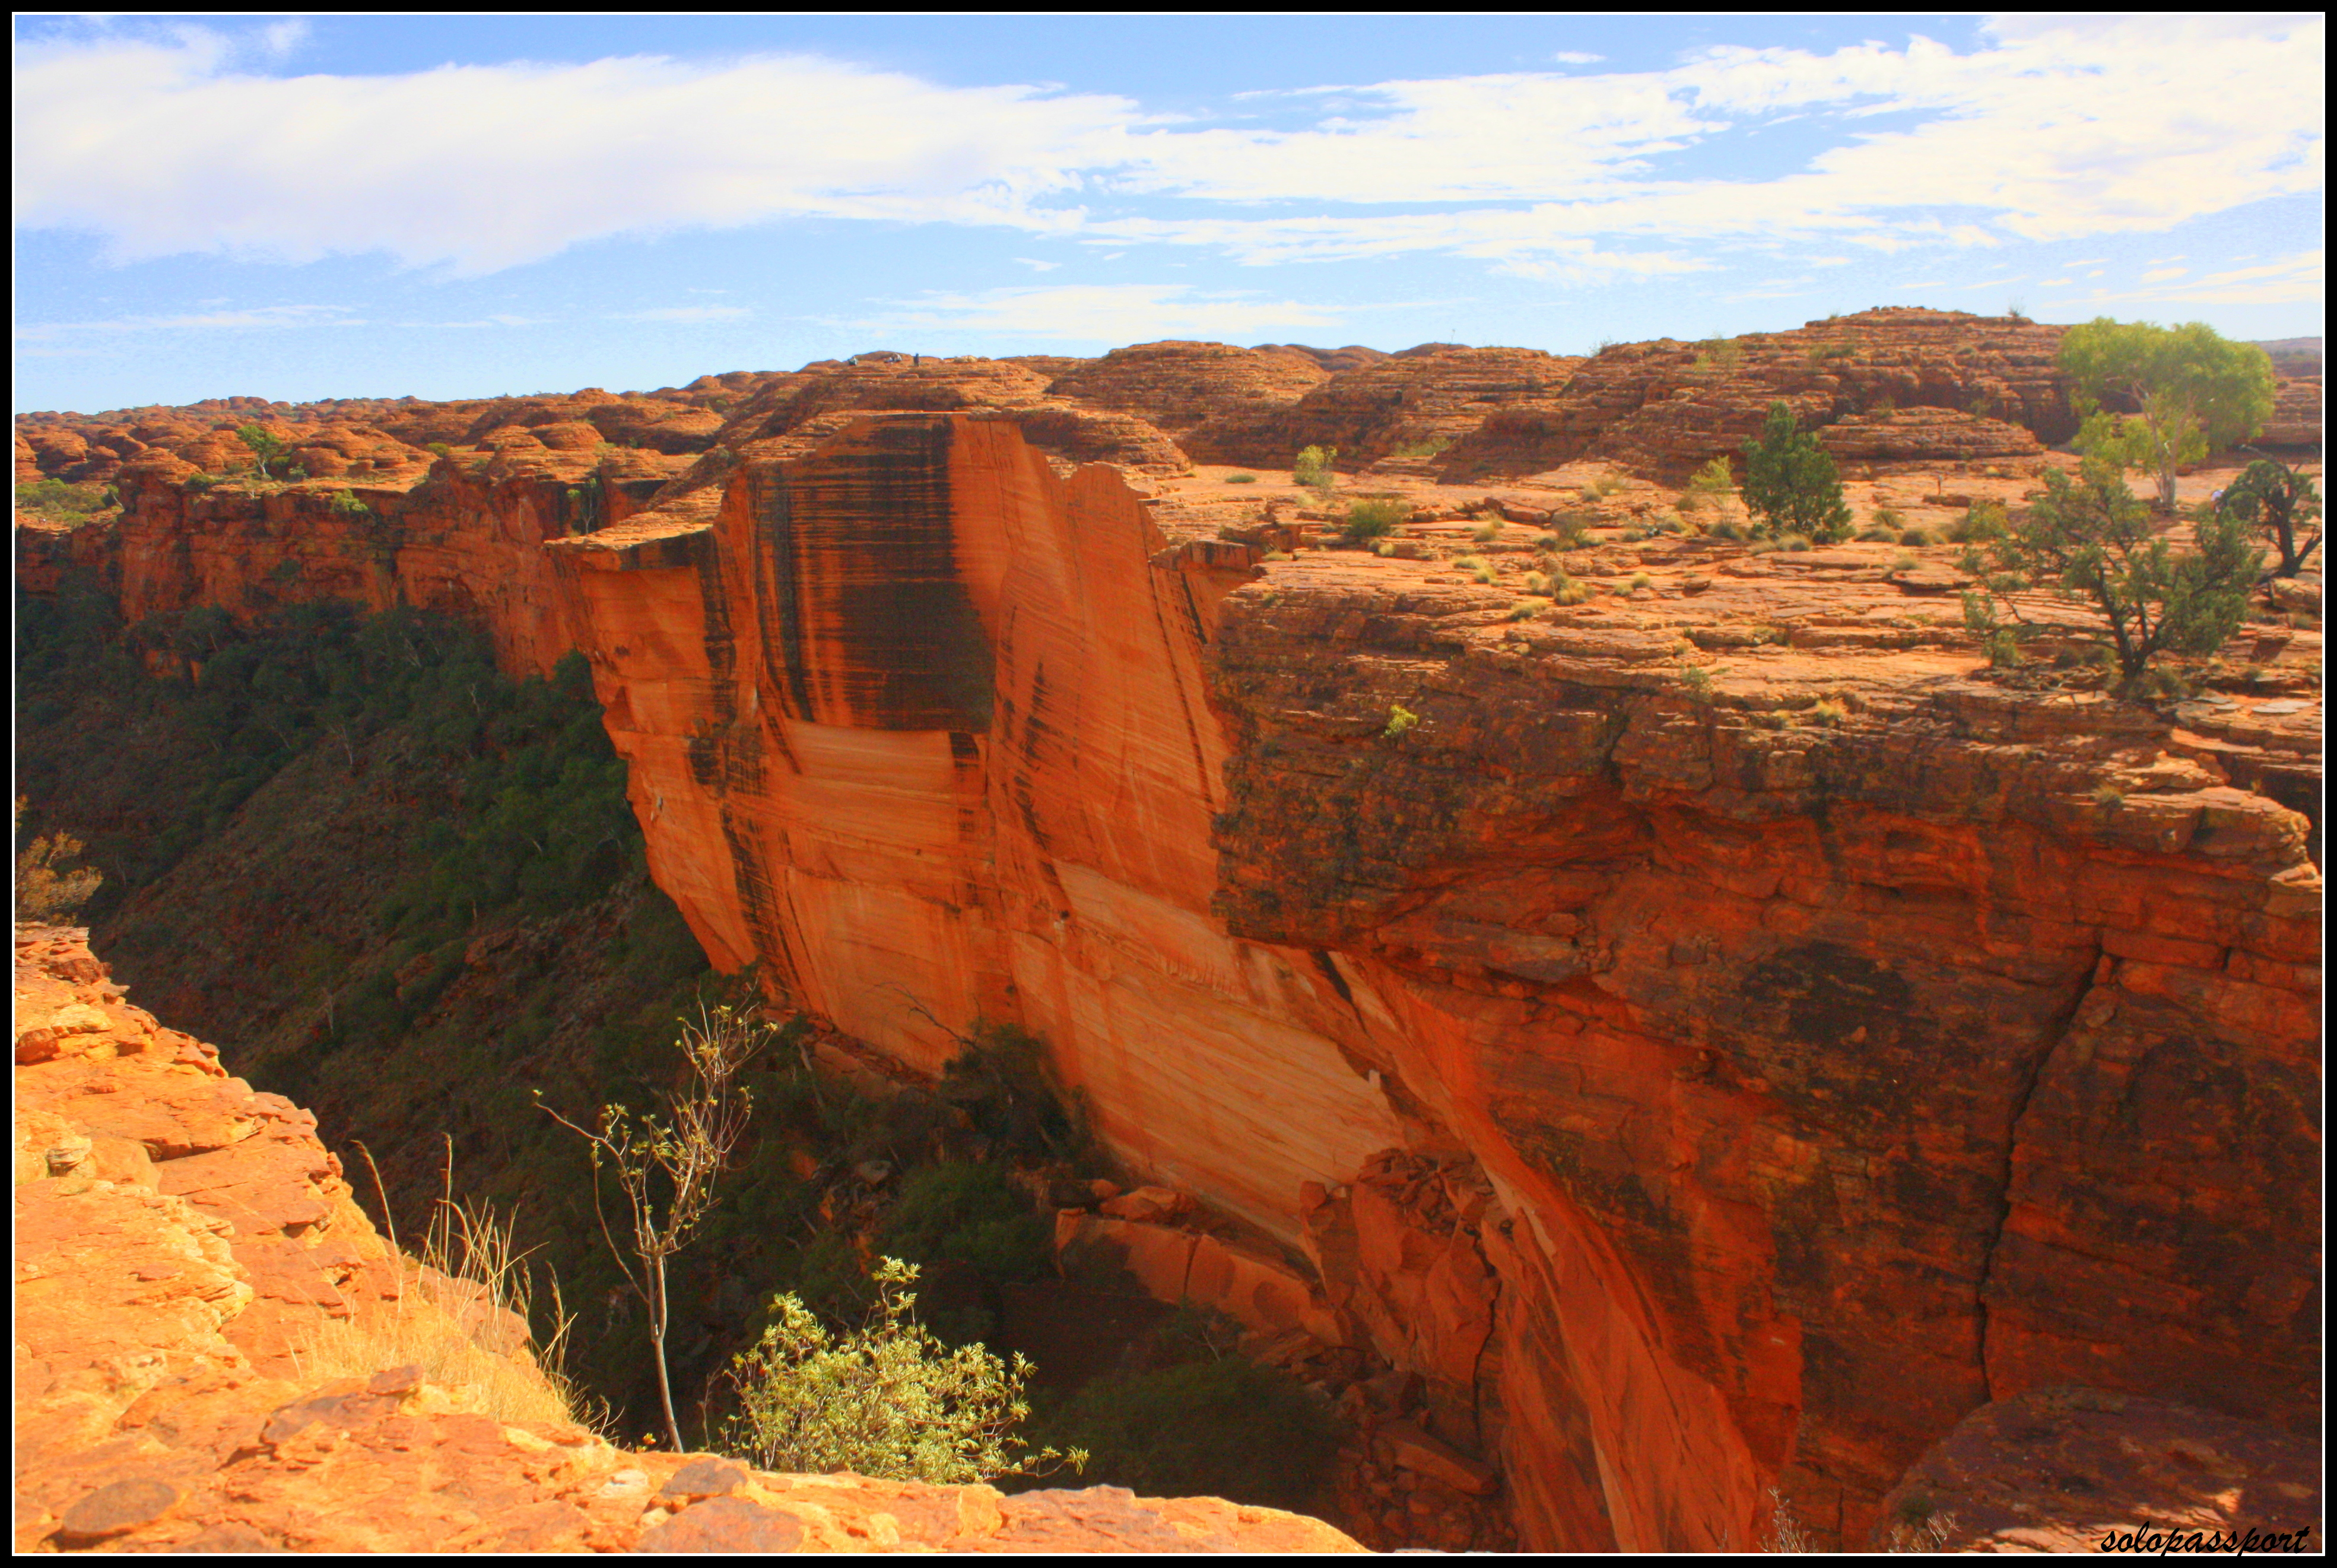 The red rocky walls – Kings Canyon it is!